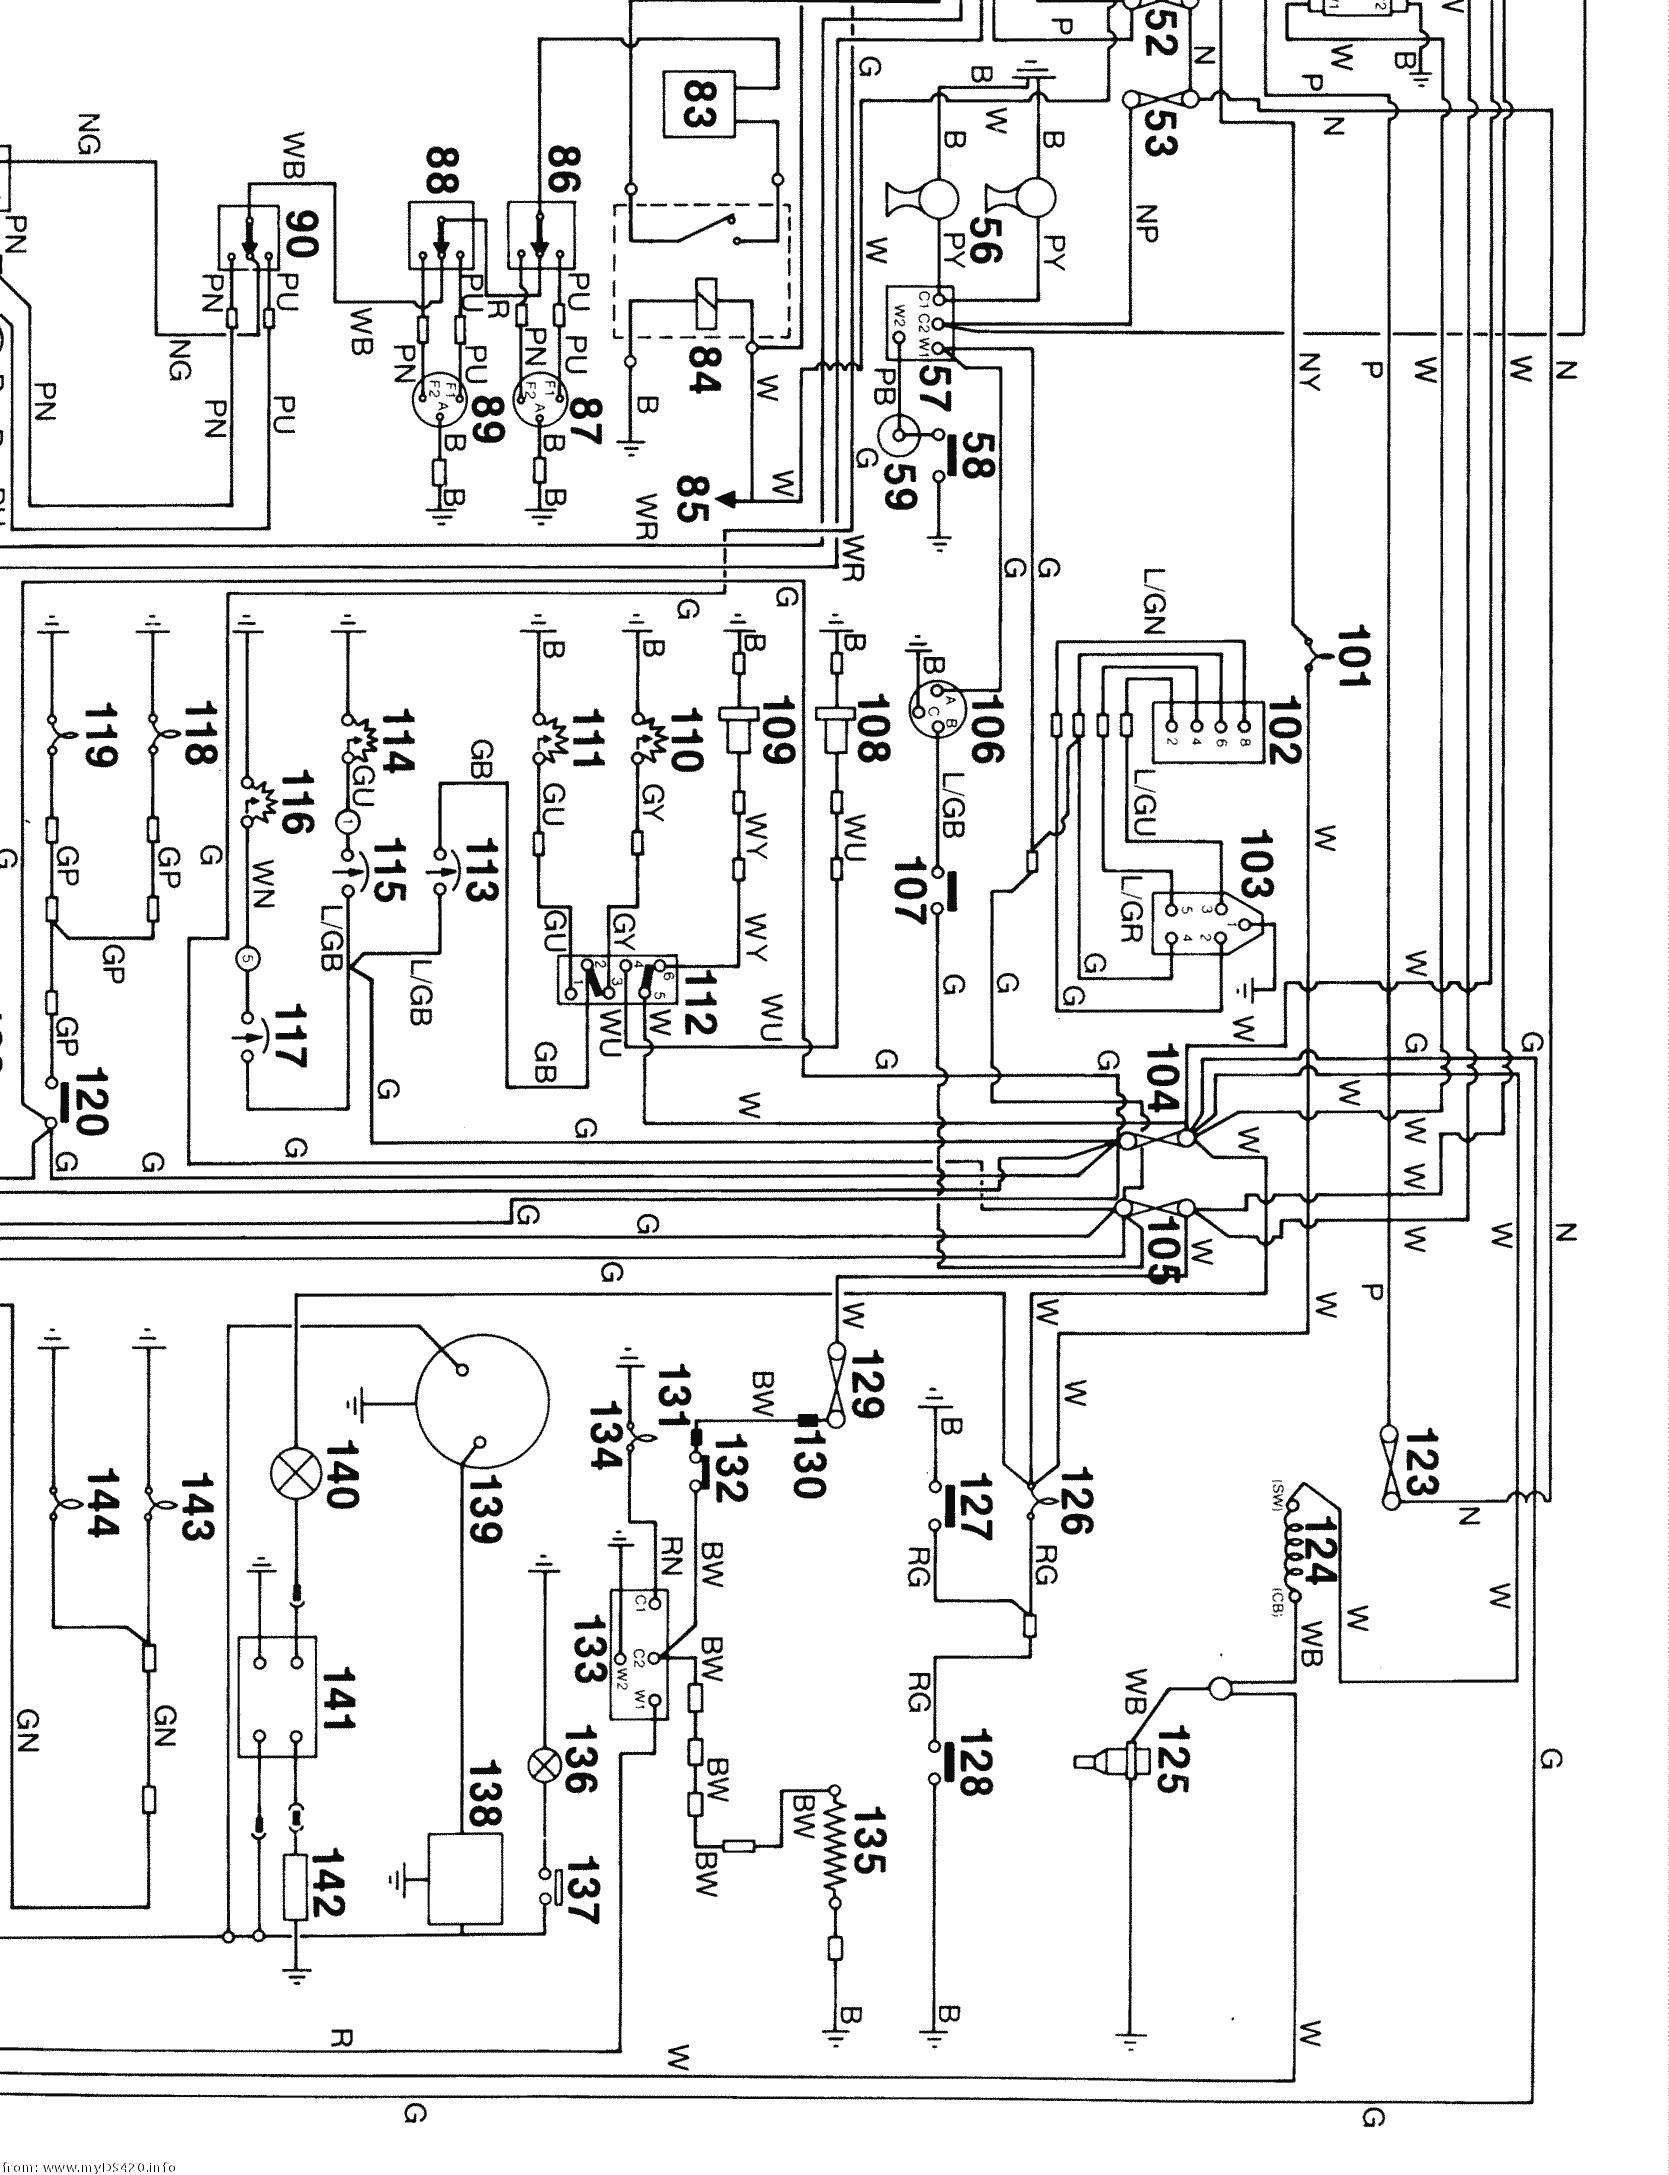 Yfz 450 Wiring Diagram YFZ 450 Screw Wiring Diagram ~ ODICIS